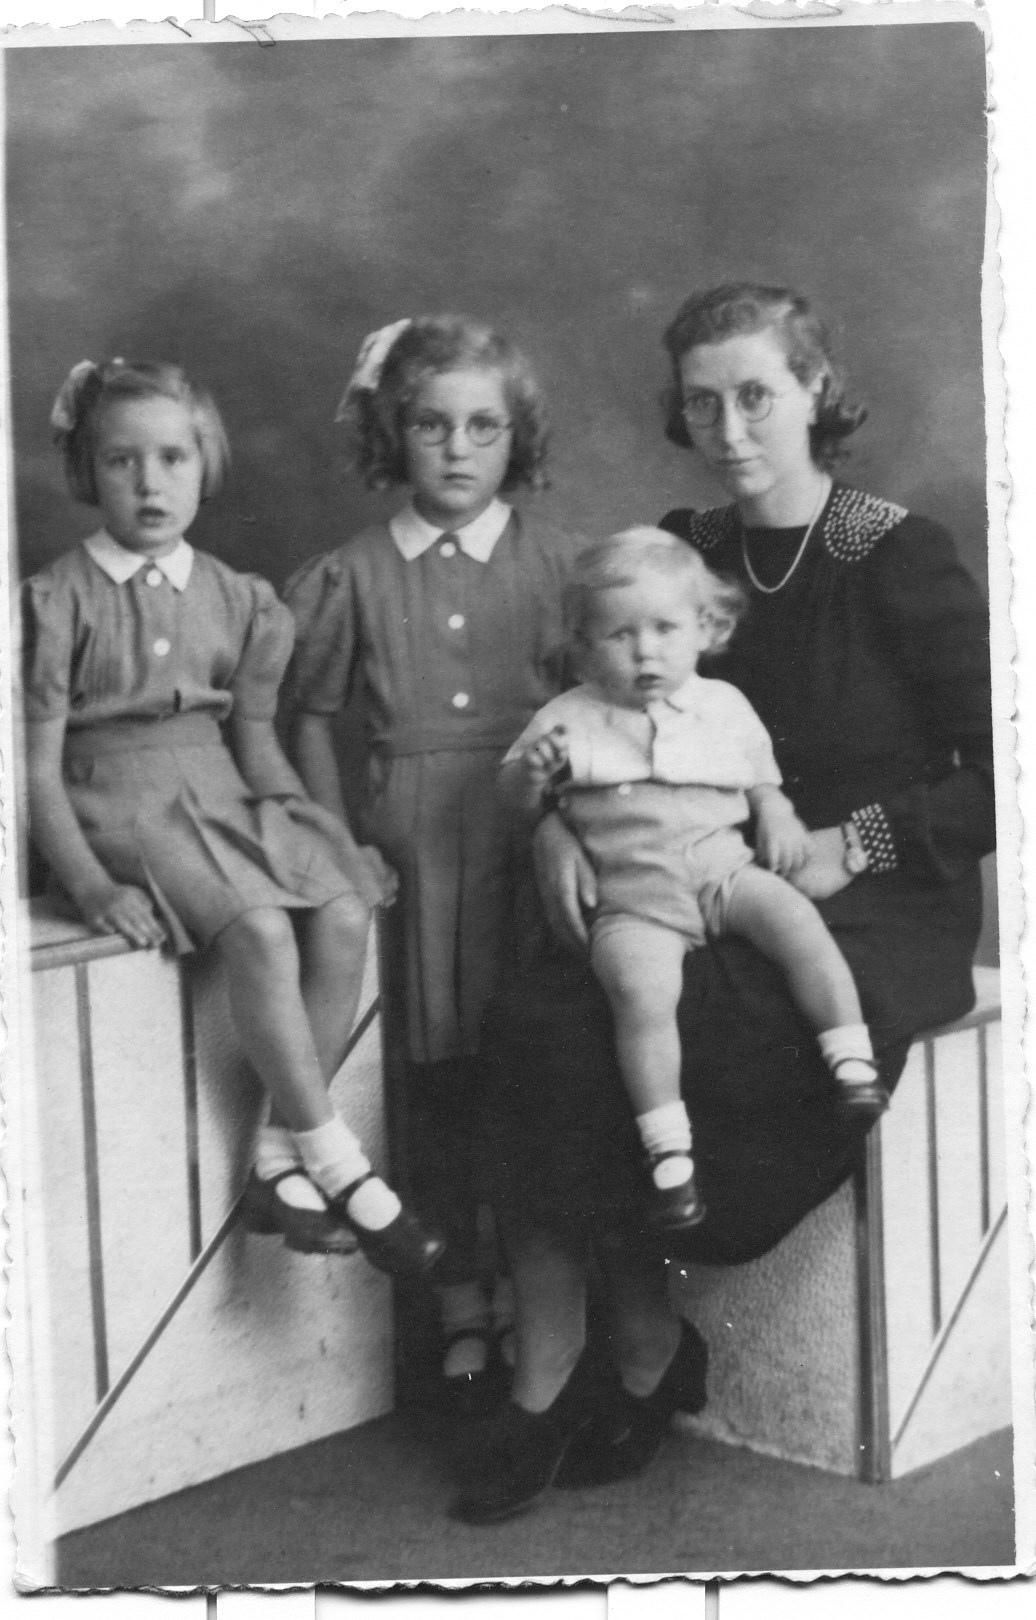 1944 - With Mum, Cynthia and Richard. Sylvia is 8 years old.